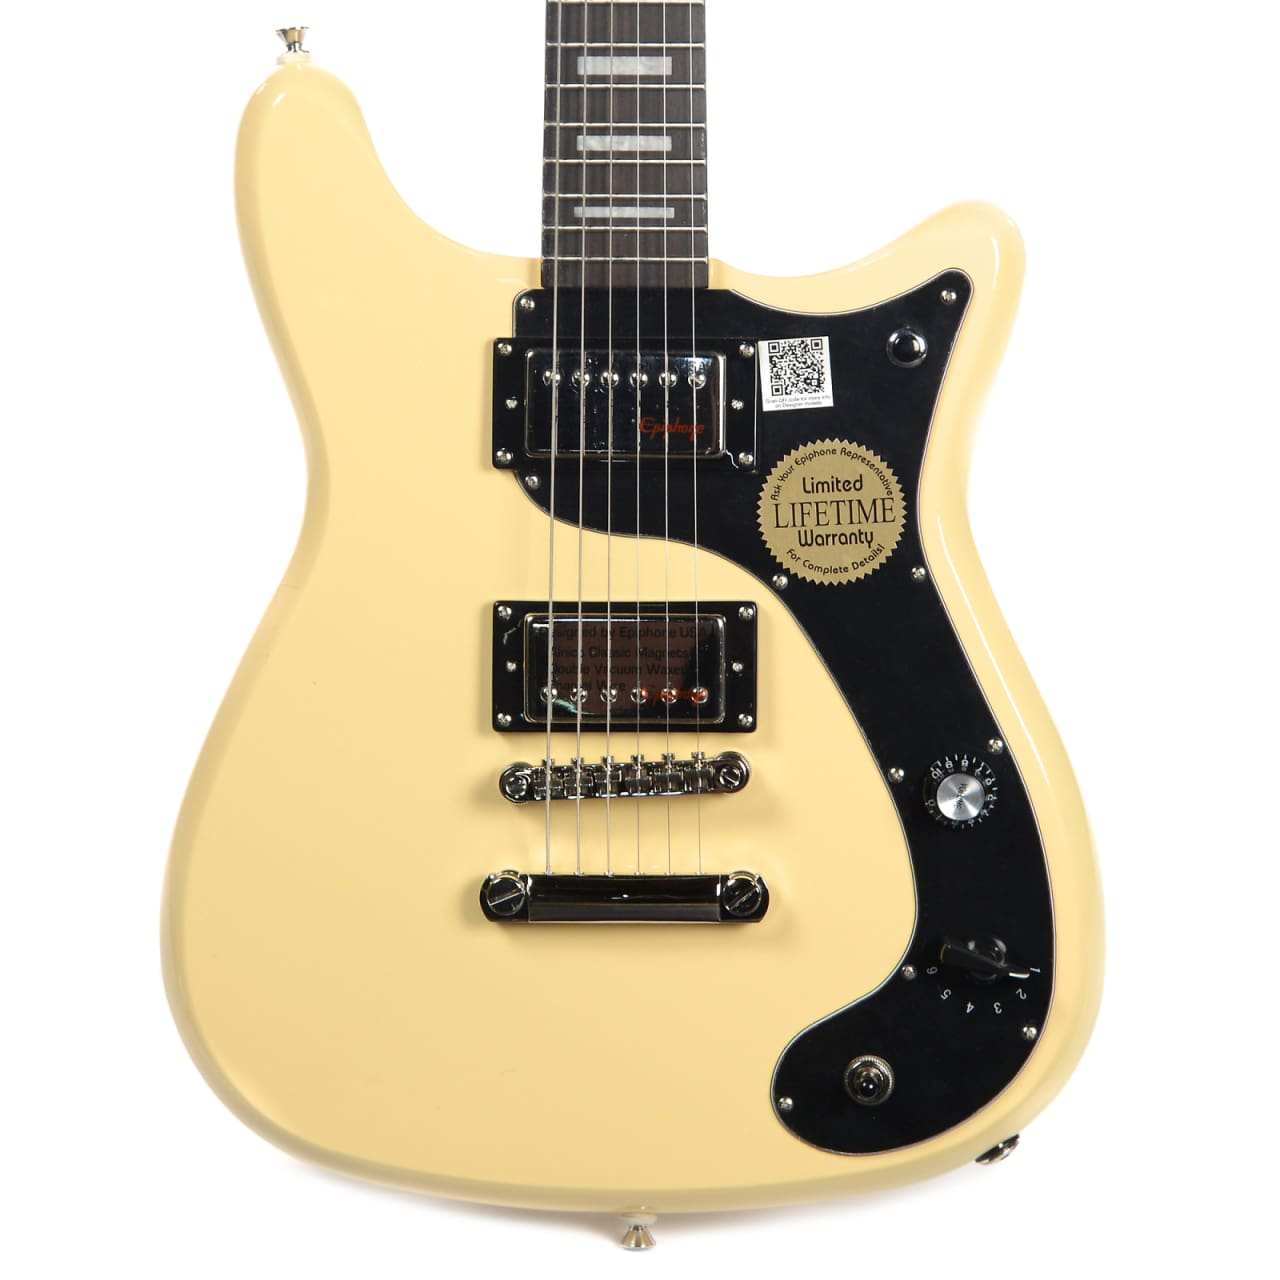 Epiphone Wilshire Phant-O-Matic Outfit Antique Ivory   Reverb: https://reverb.com/item/1892936-epiphone-wilshire-phant-o-matic-outfit-antique-ivory-nh